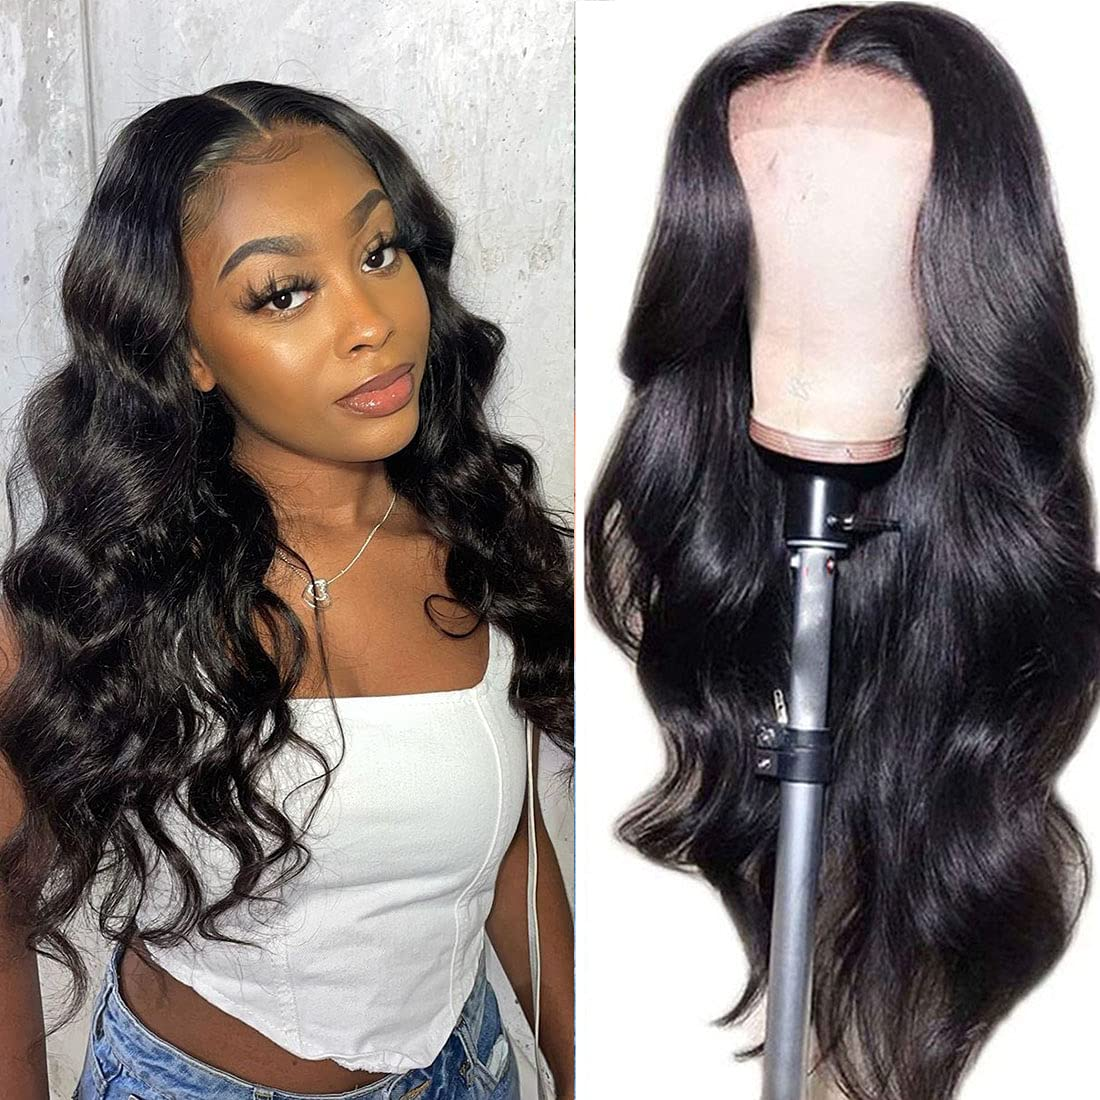 Body Wave Lace Front Discount mail order Wigs Human Black Be super welcome Hair 4x4 for Cl Women